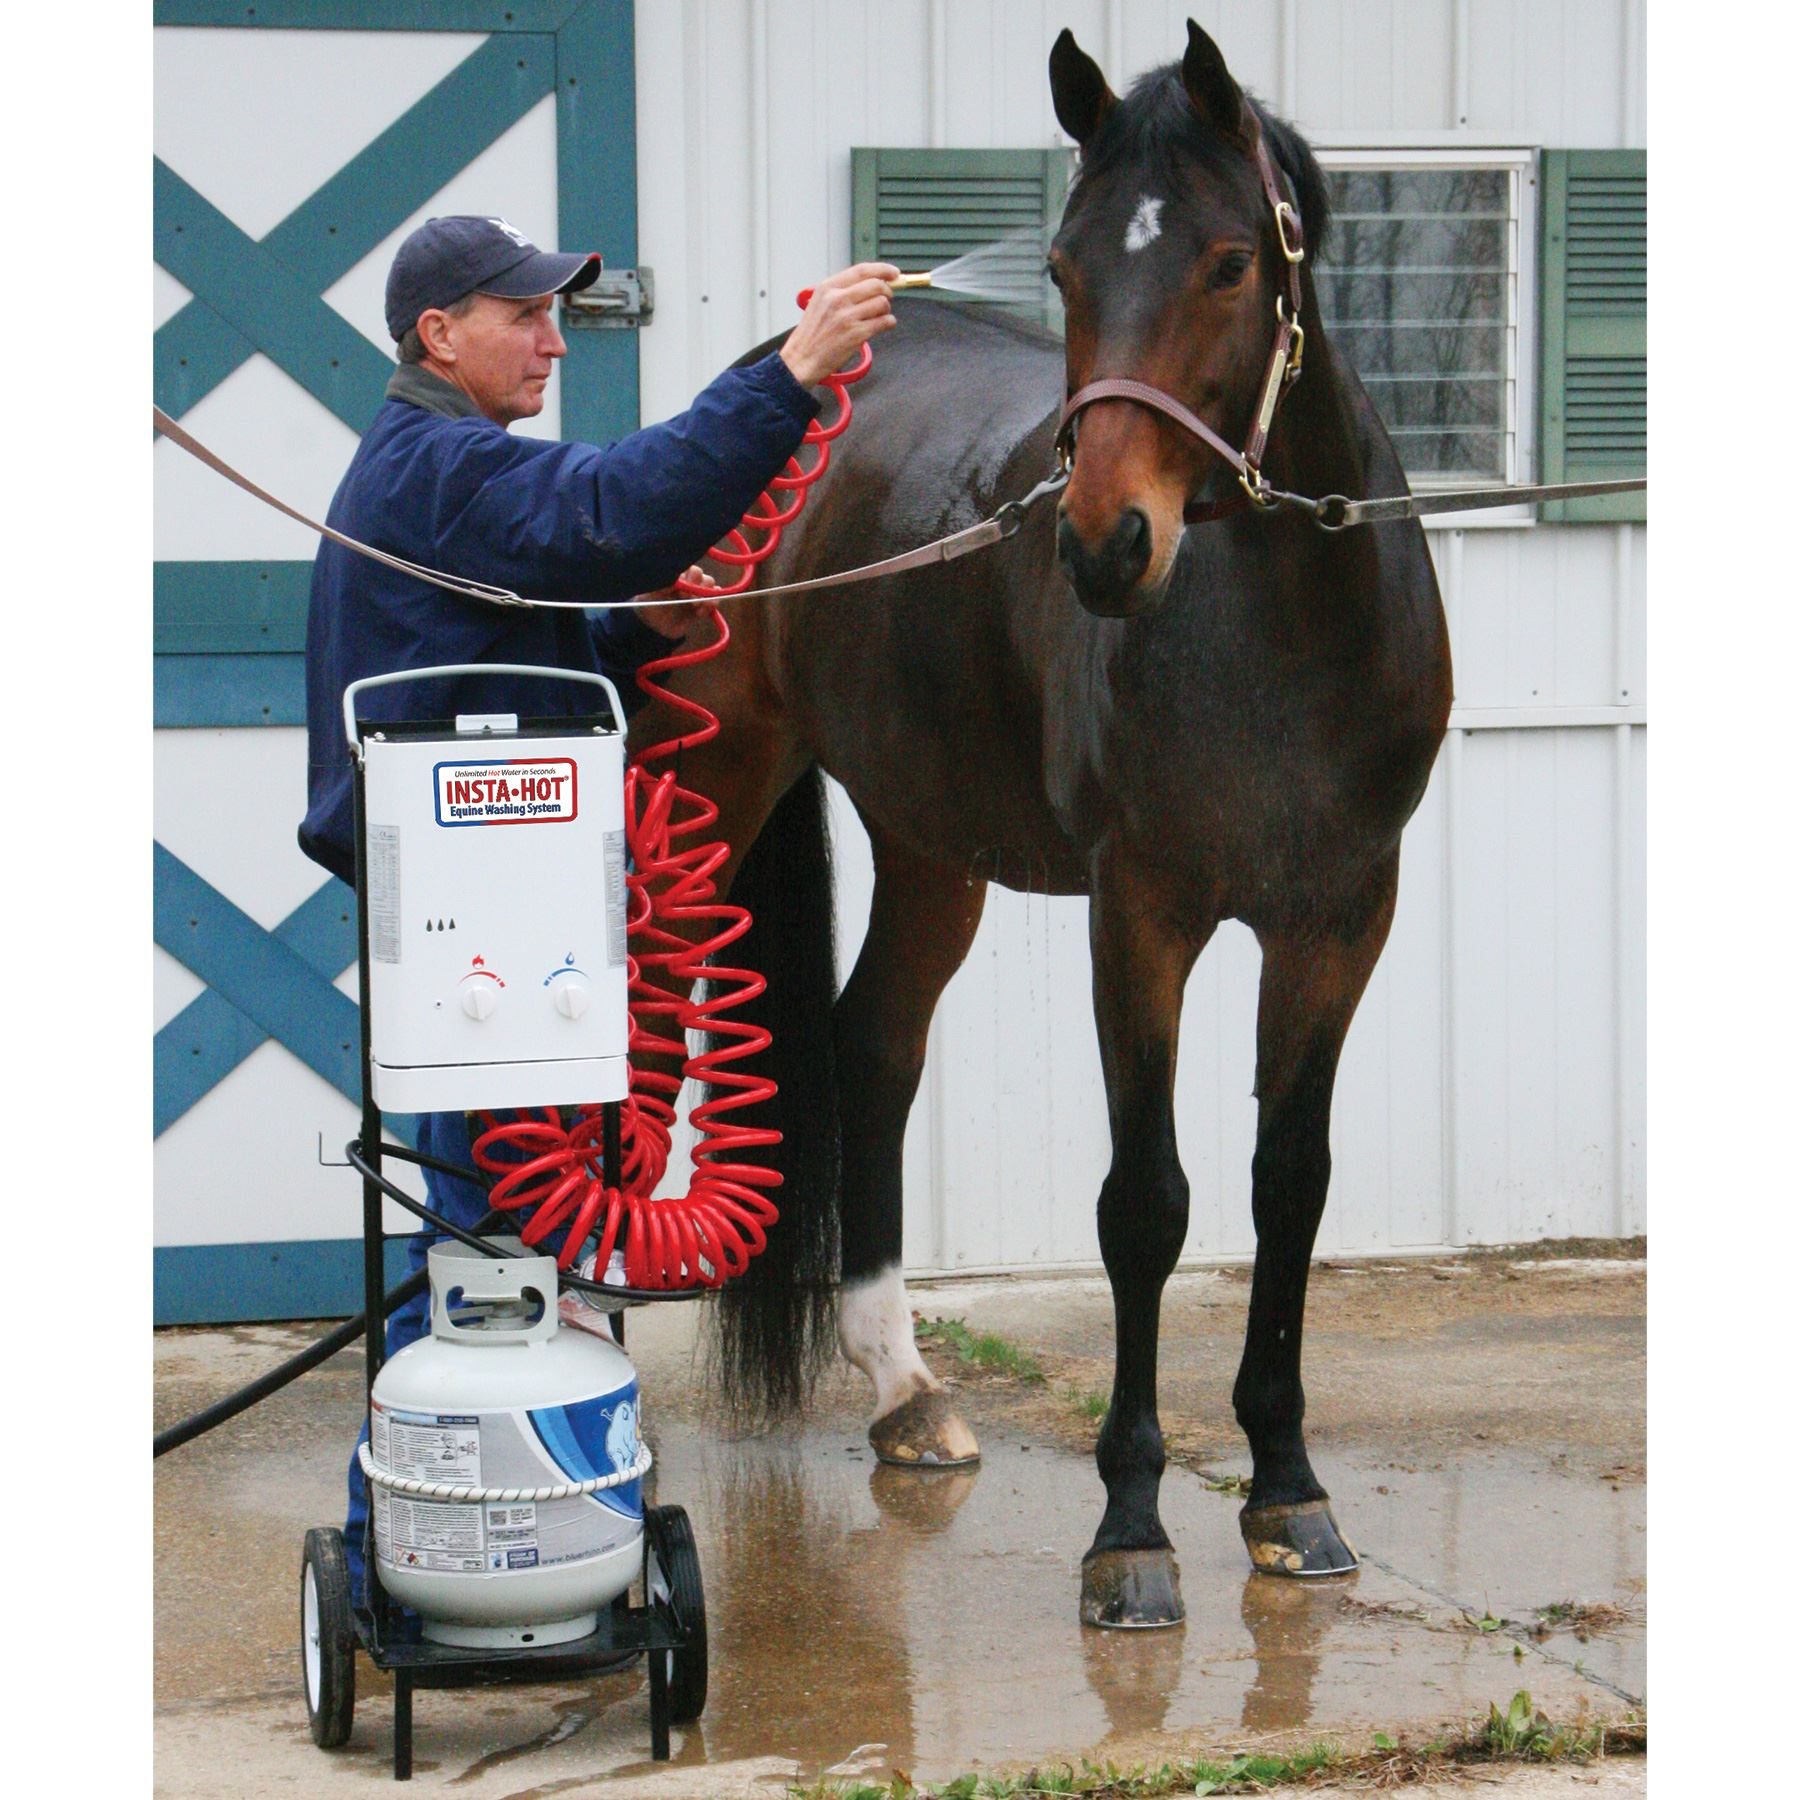 Insta Hot 174 Portable Equine Washing System In Western At